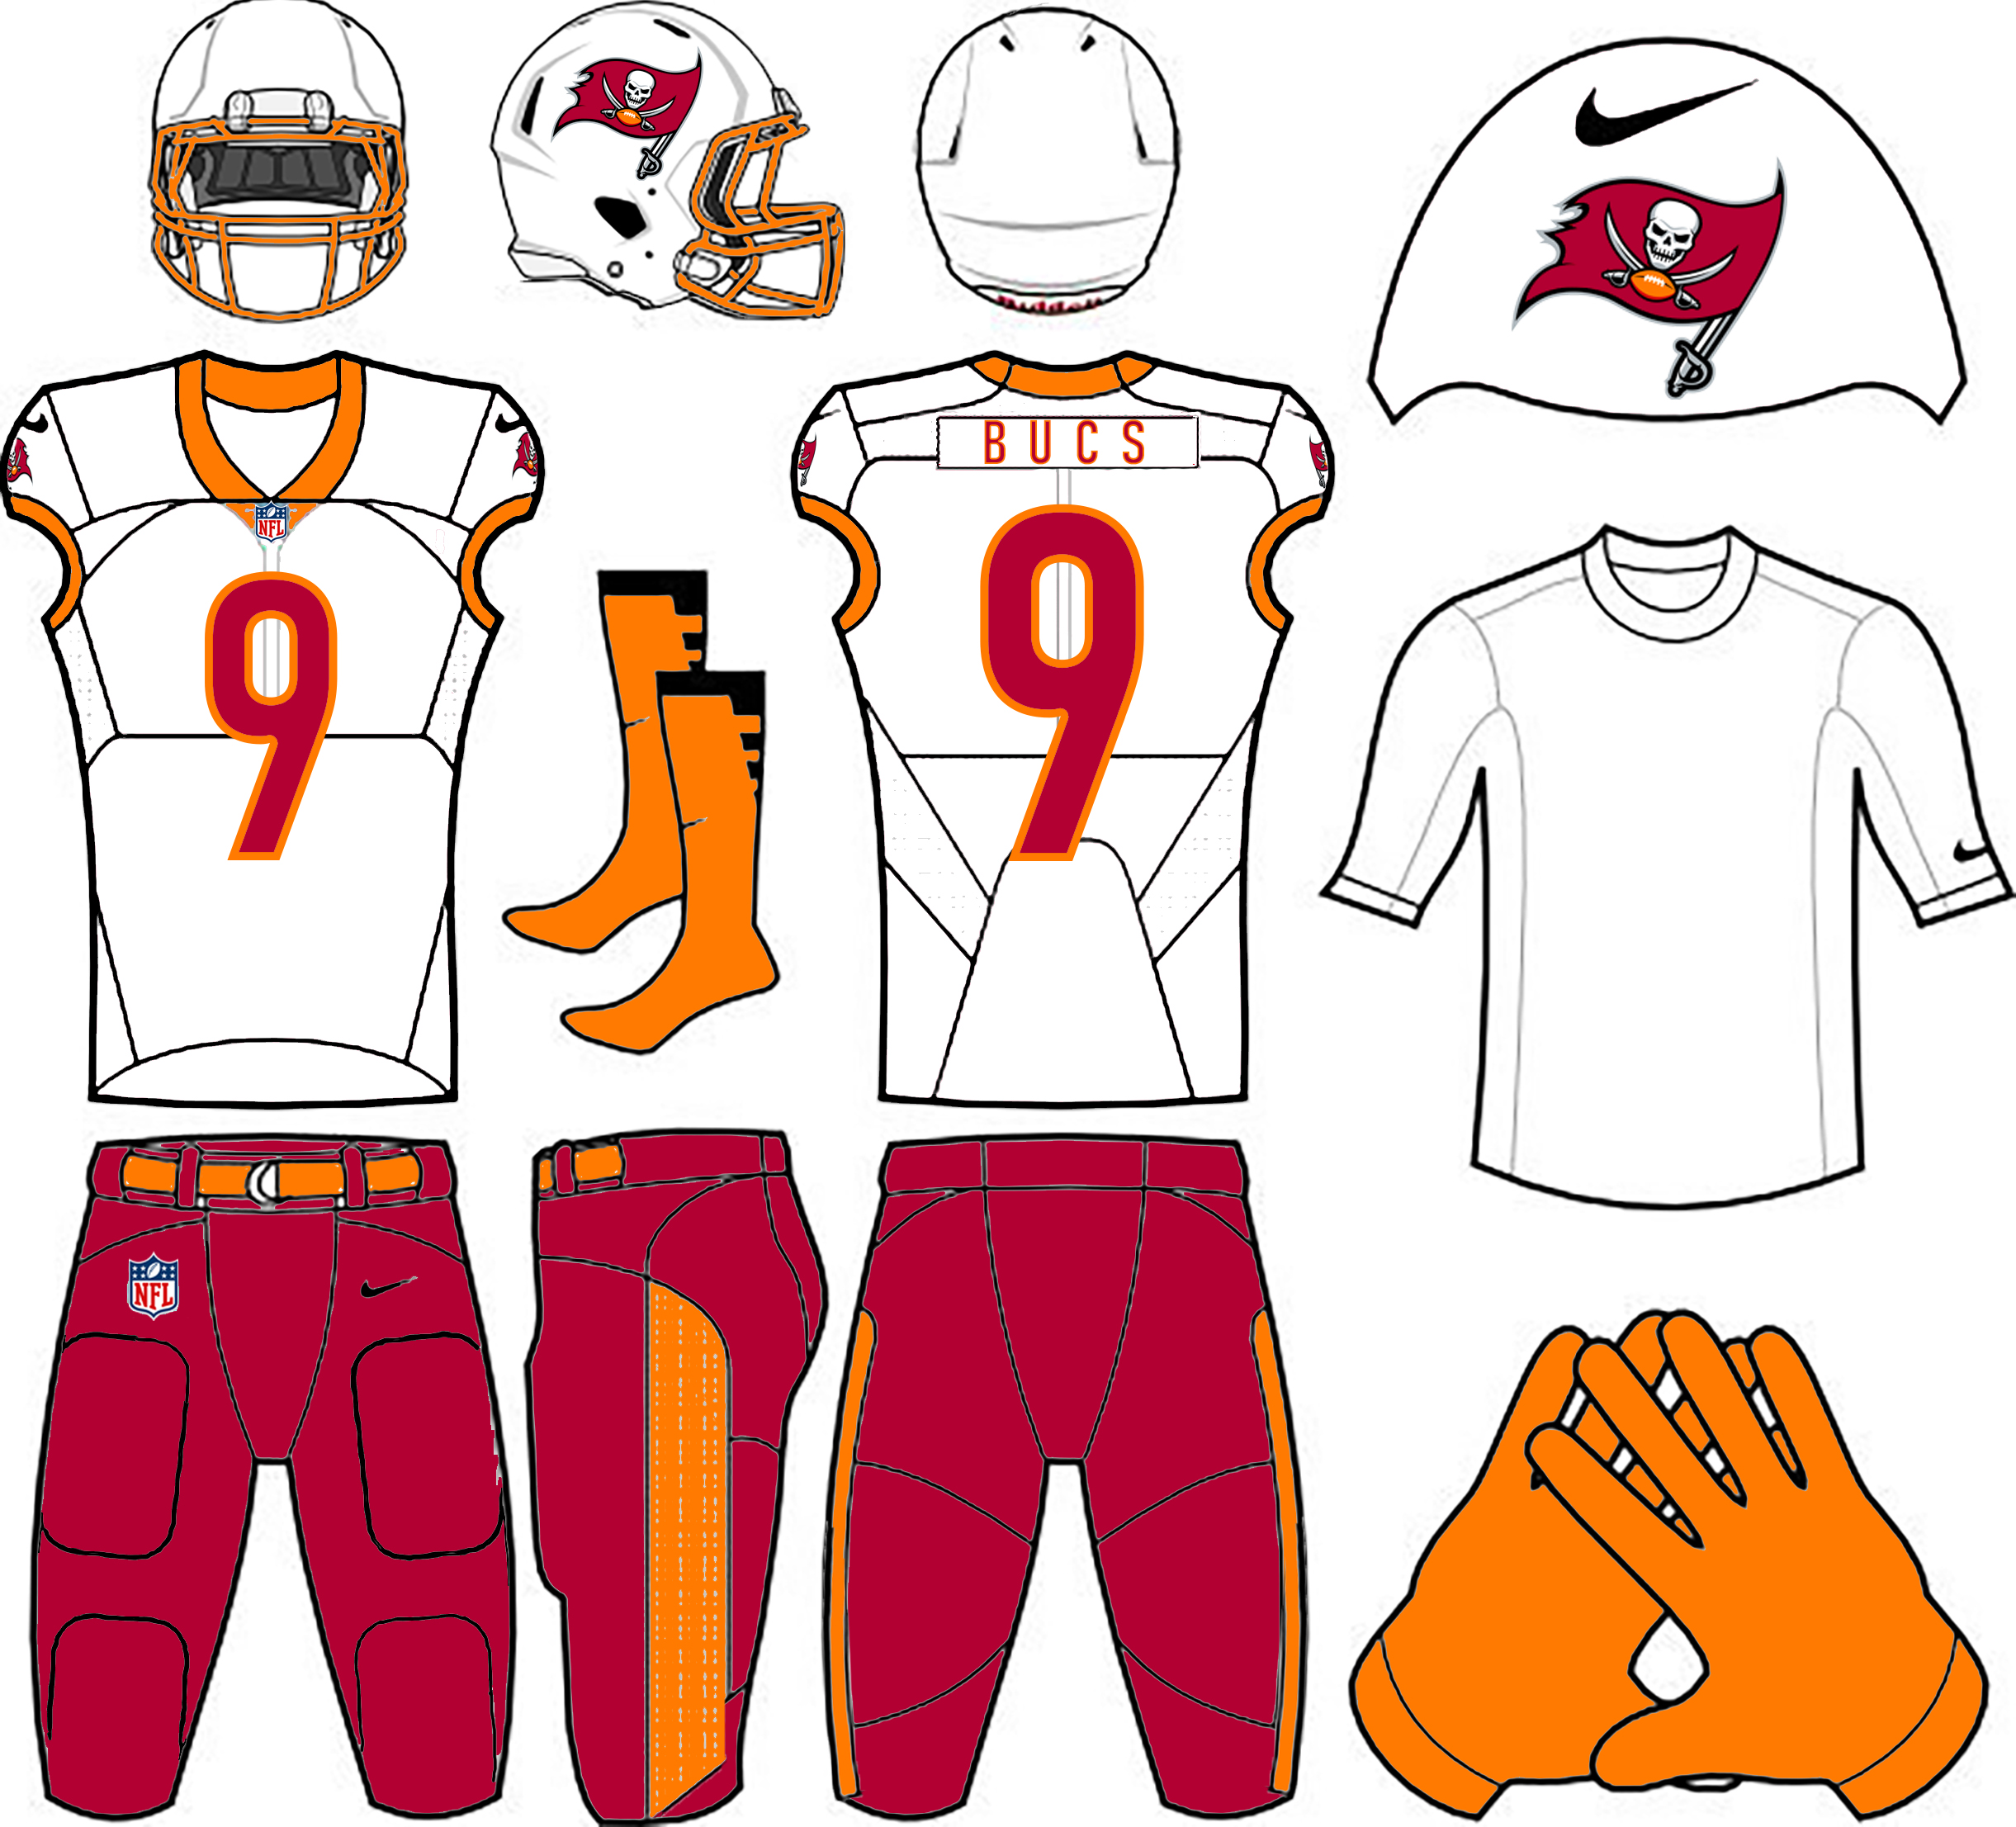 uniwatch tampa bay buccaneers redesign contest skipper